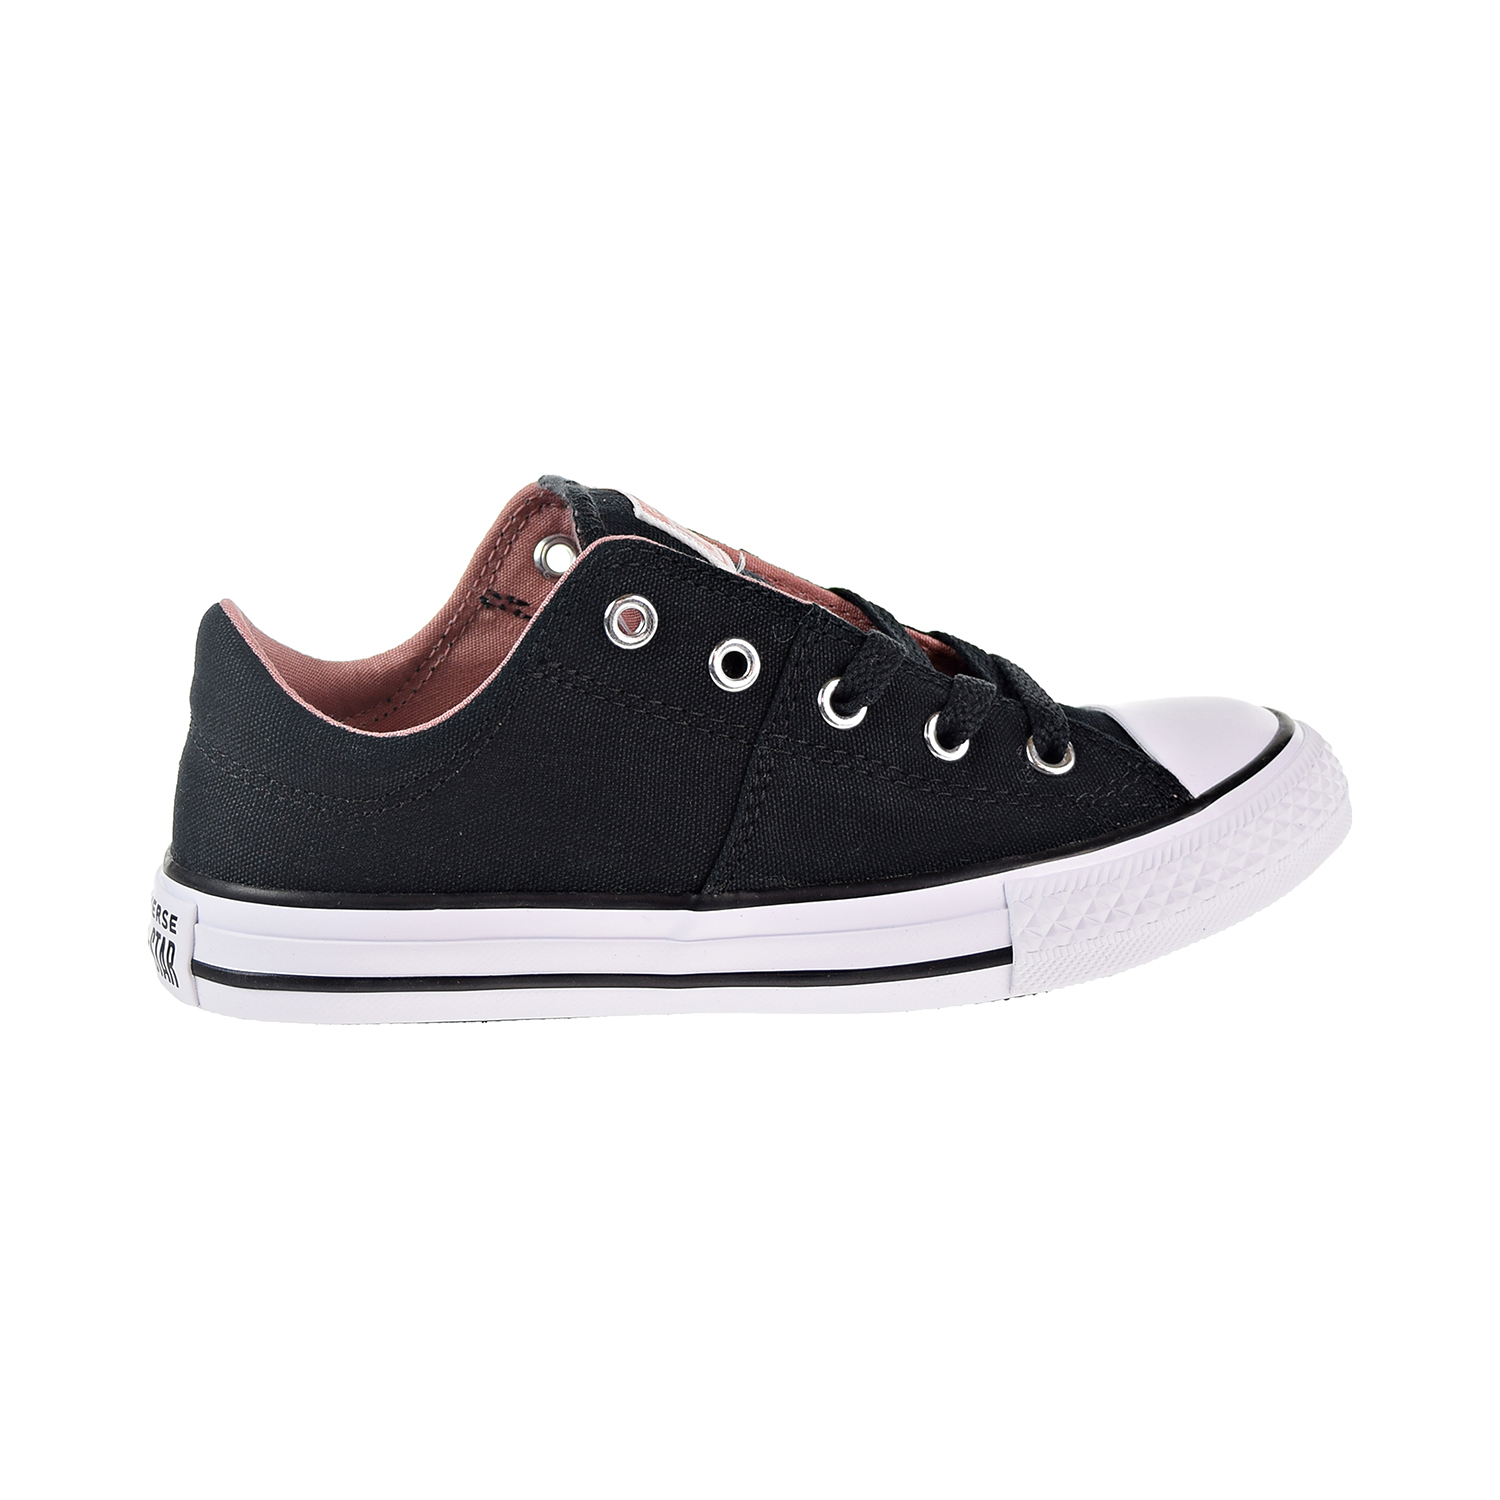 7d53249d58a7 Details about Converse Chuck Taylor All Star Madison Ox Little Big Kids  Shoes Black 661882F